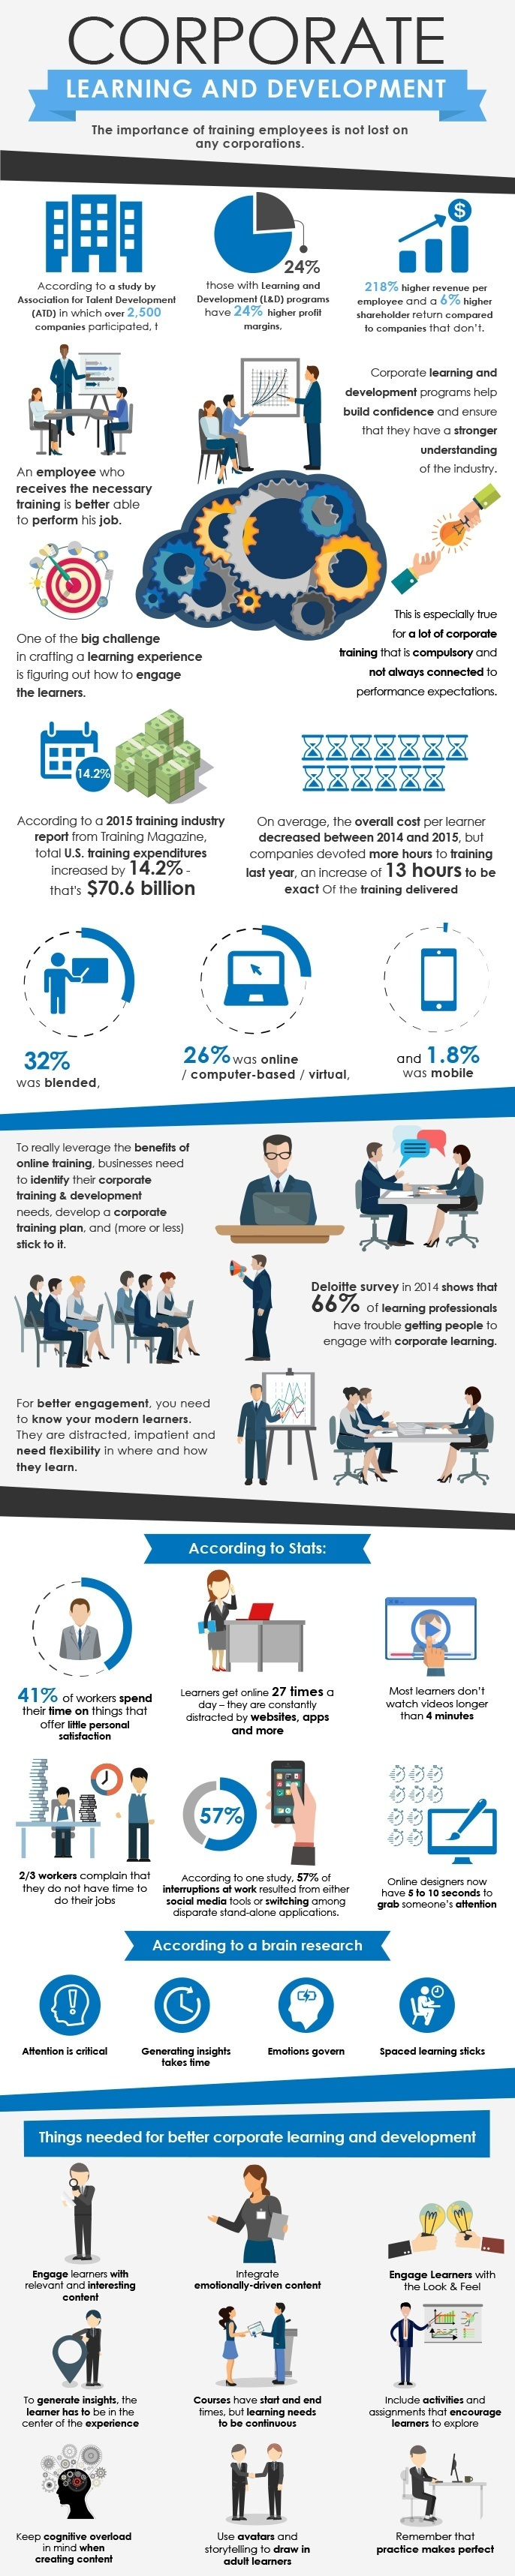 Corporate Learning and Development Infographic